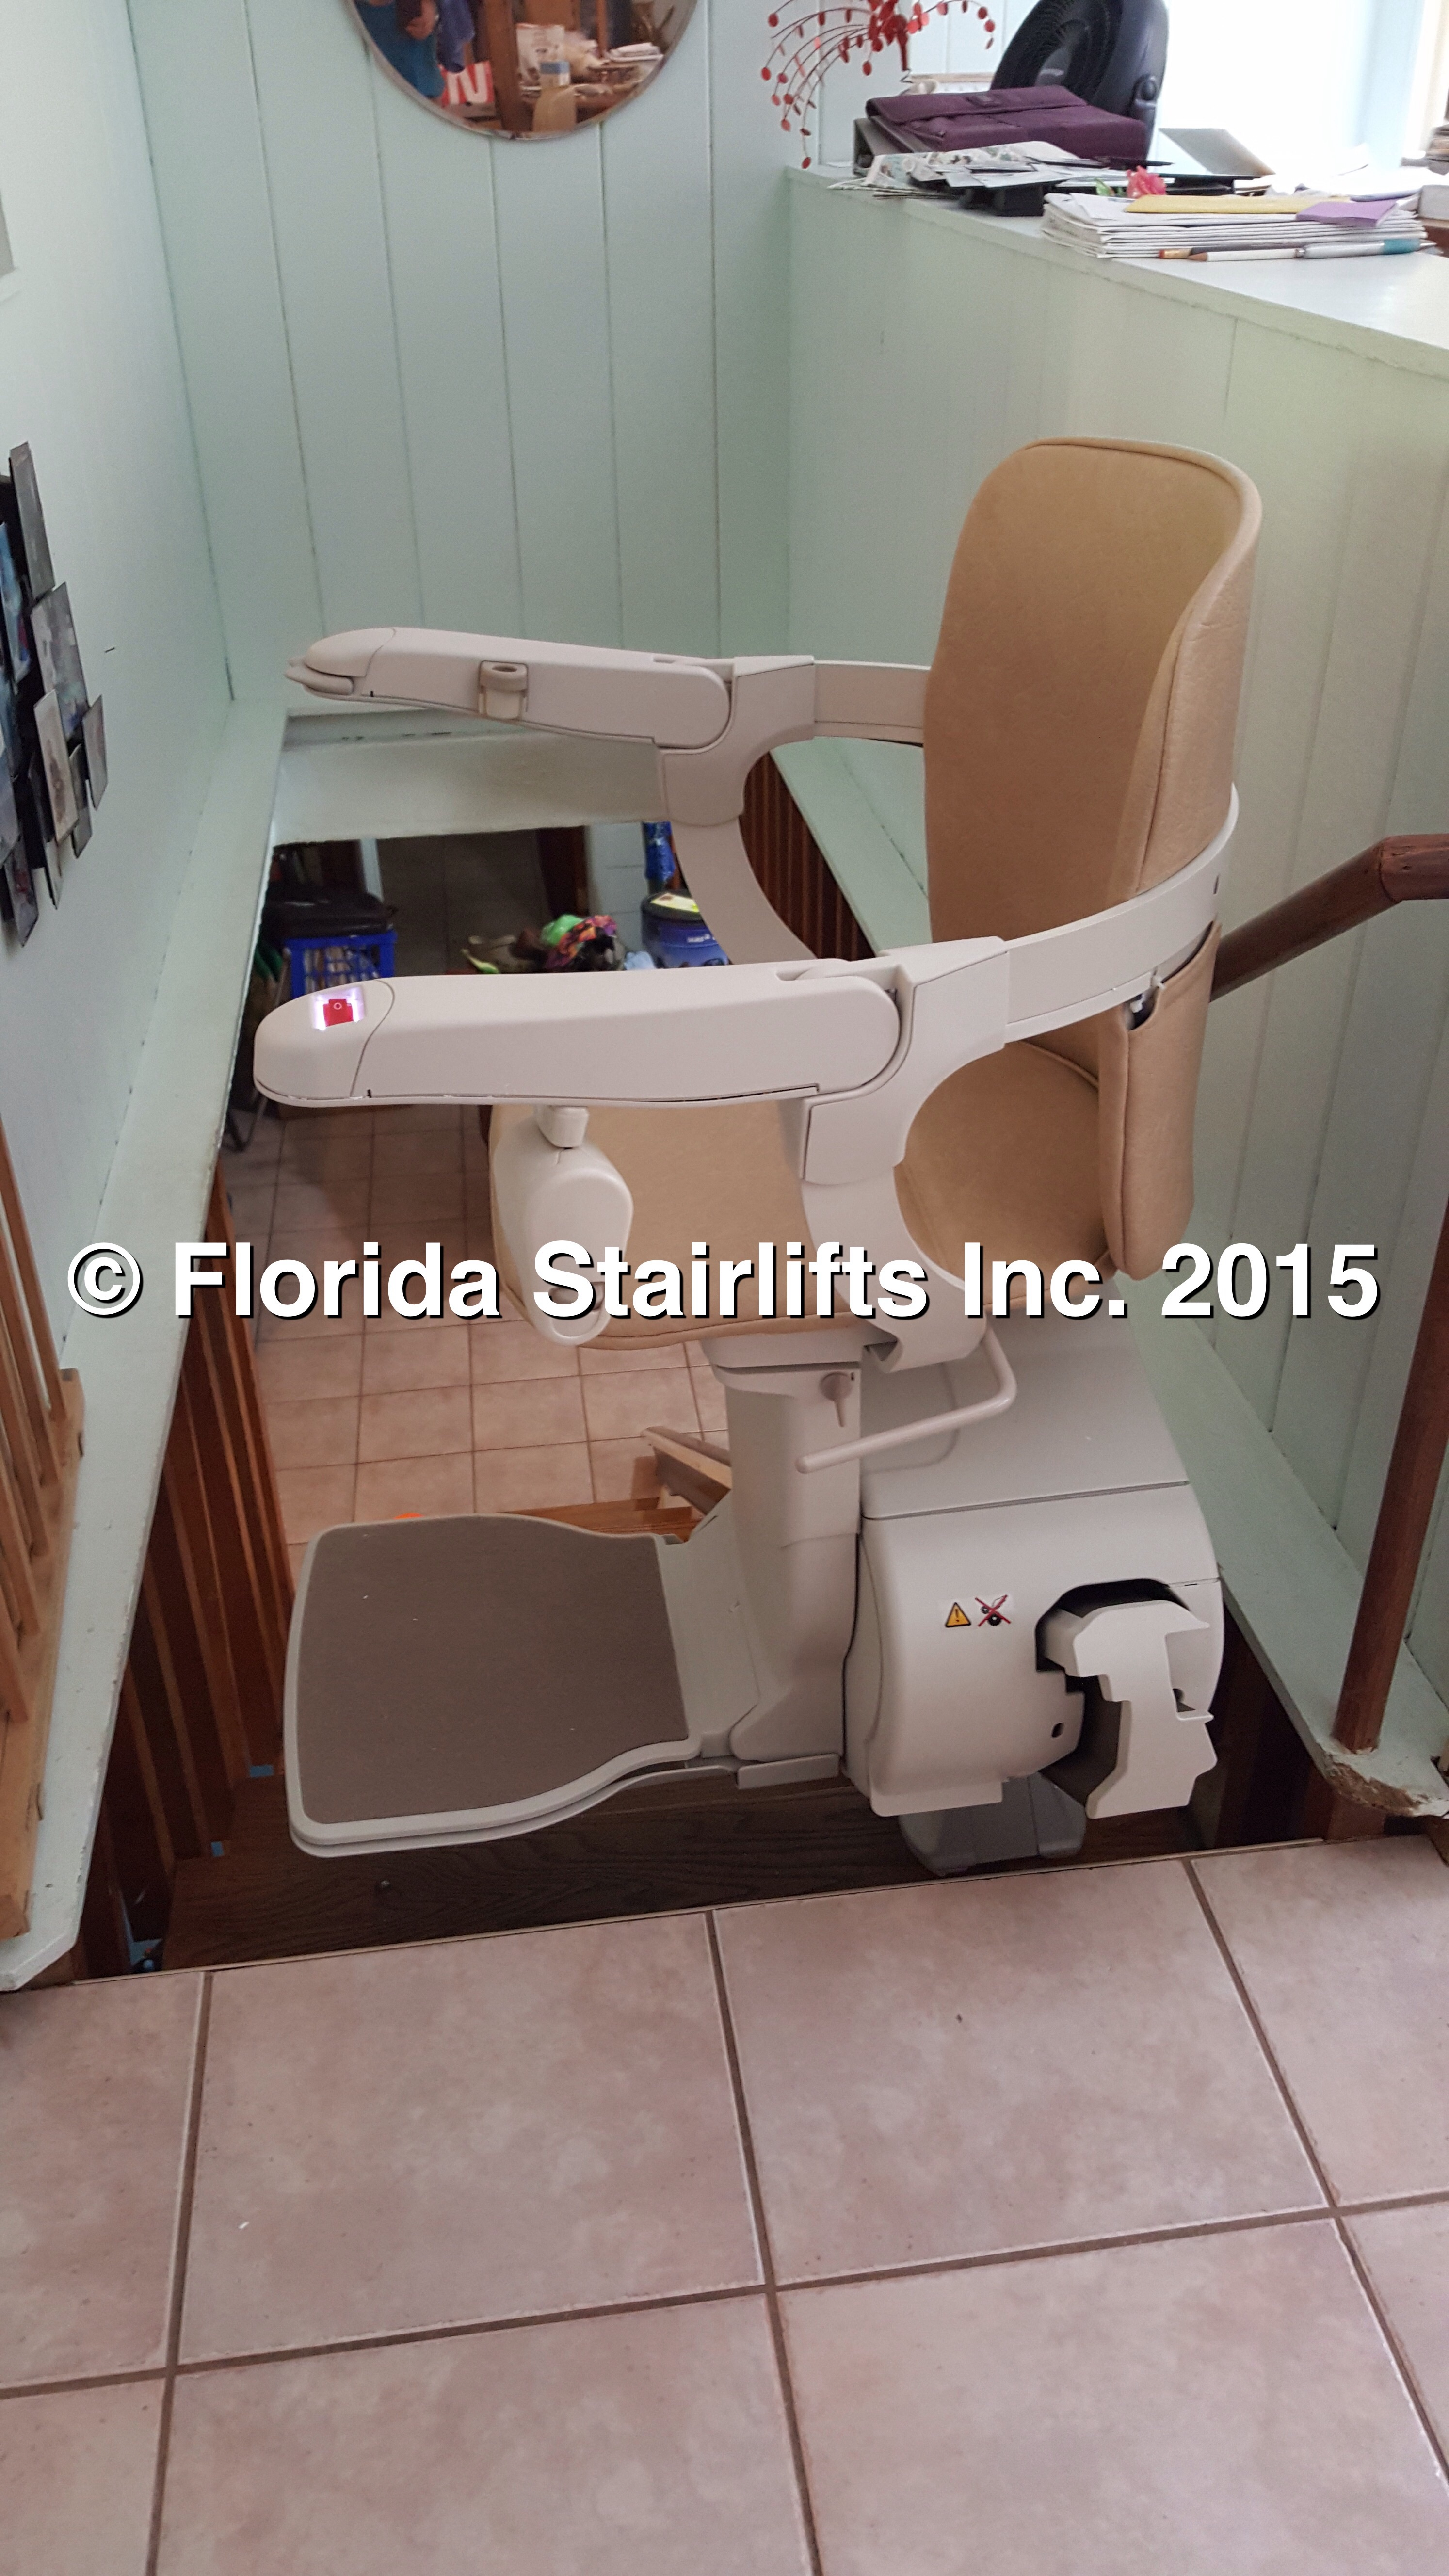 Choose the best stairlift to suit your needs